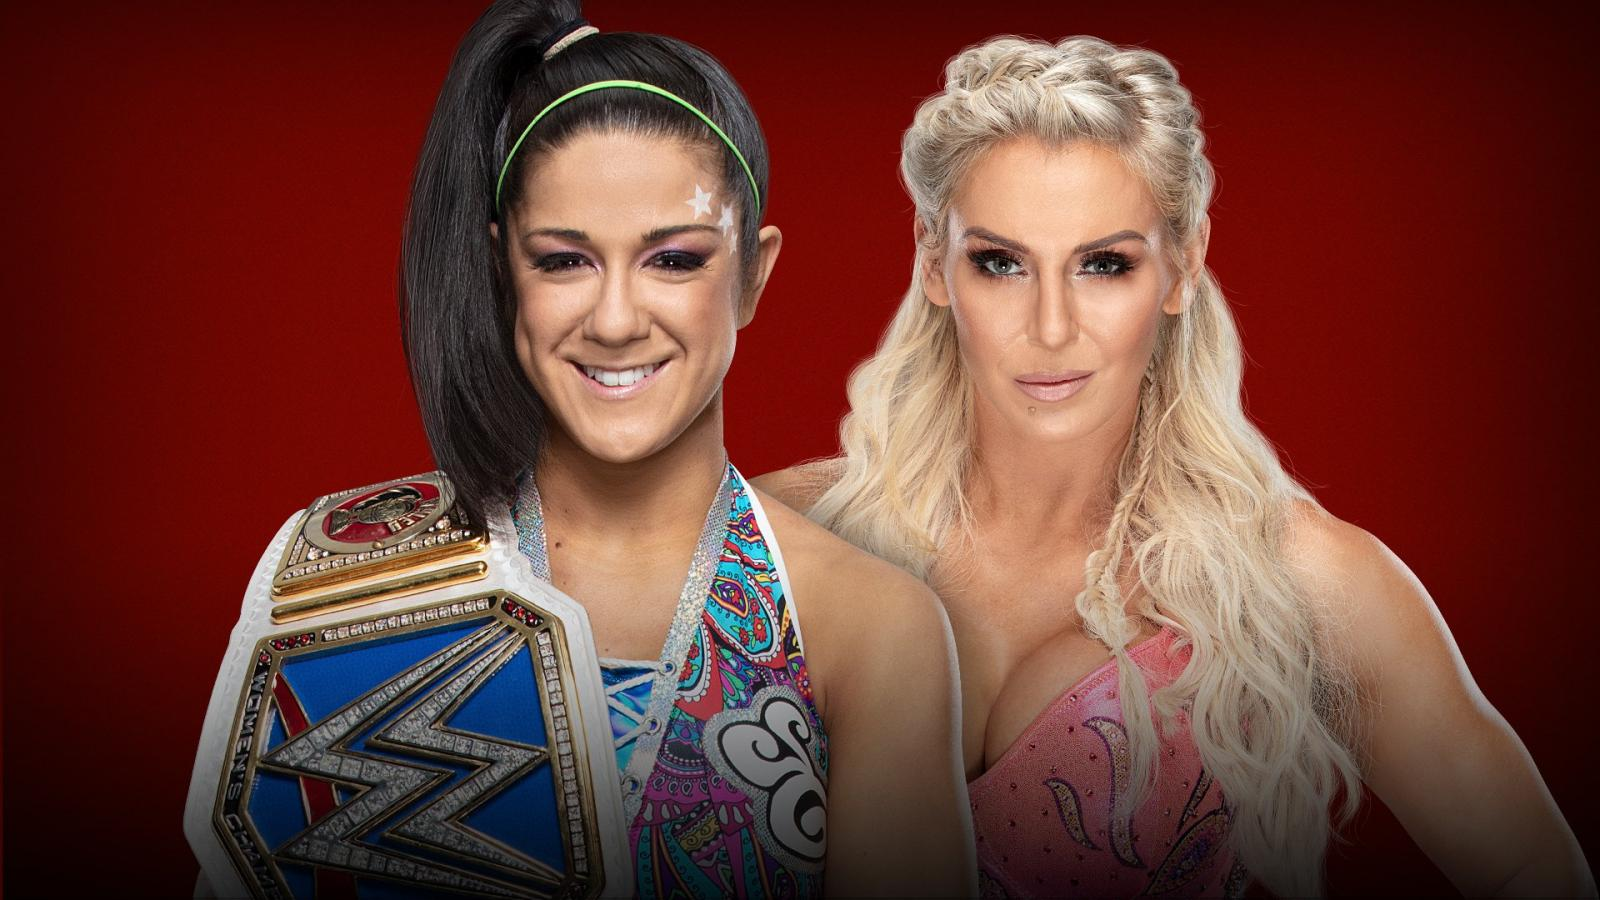 Bayley vs. Charlotte added to Hell in a Cell after poor build